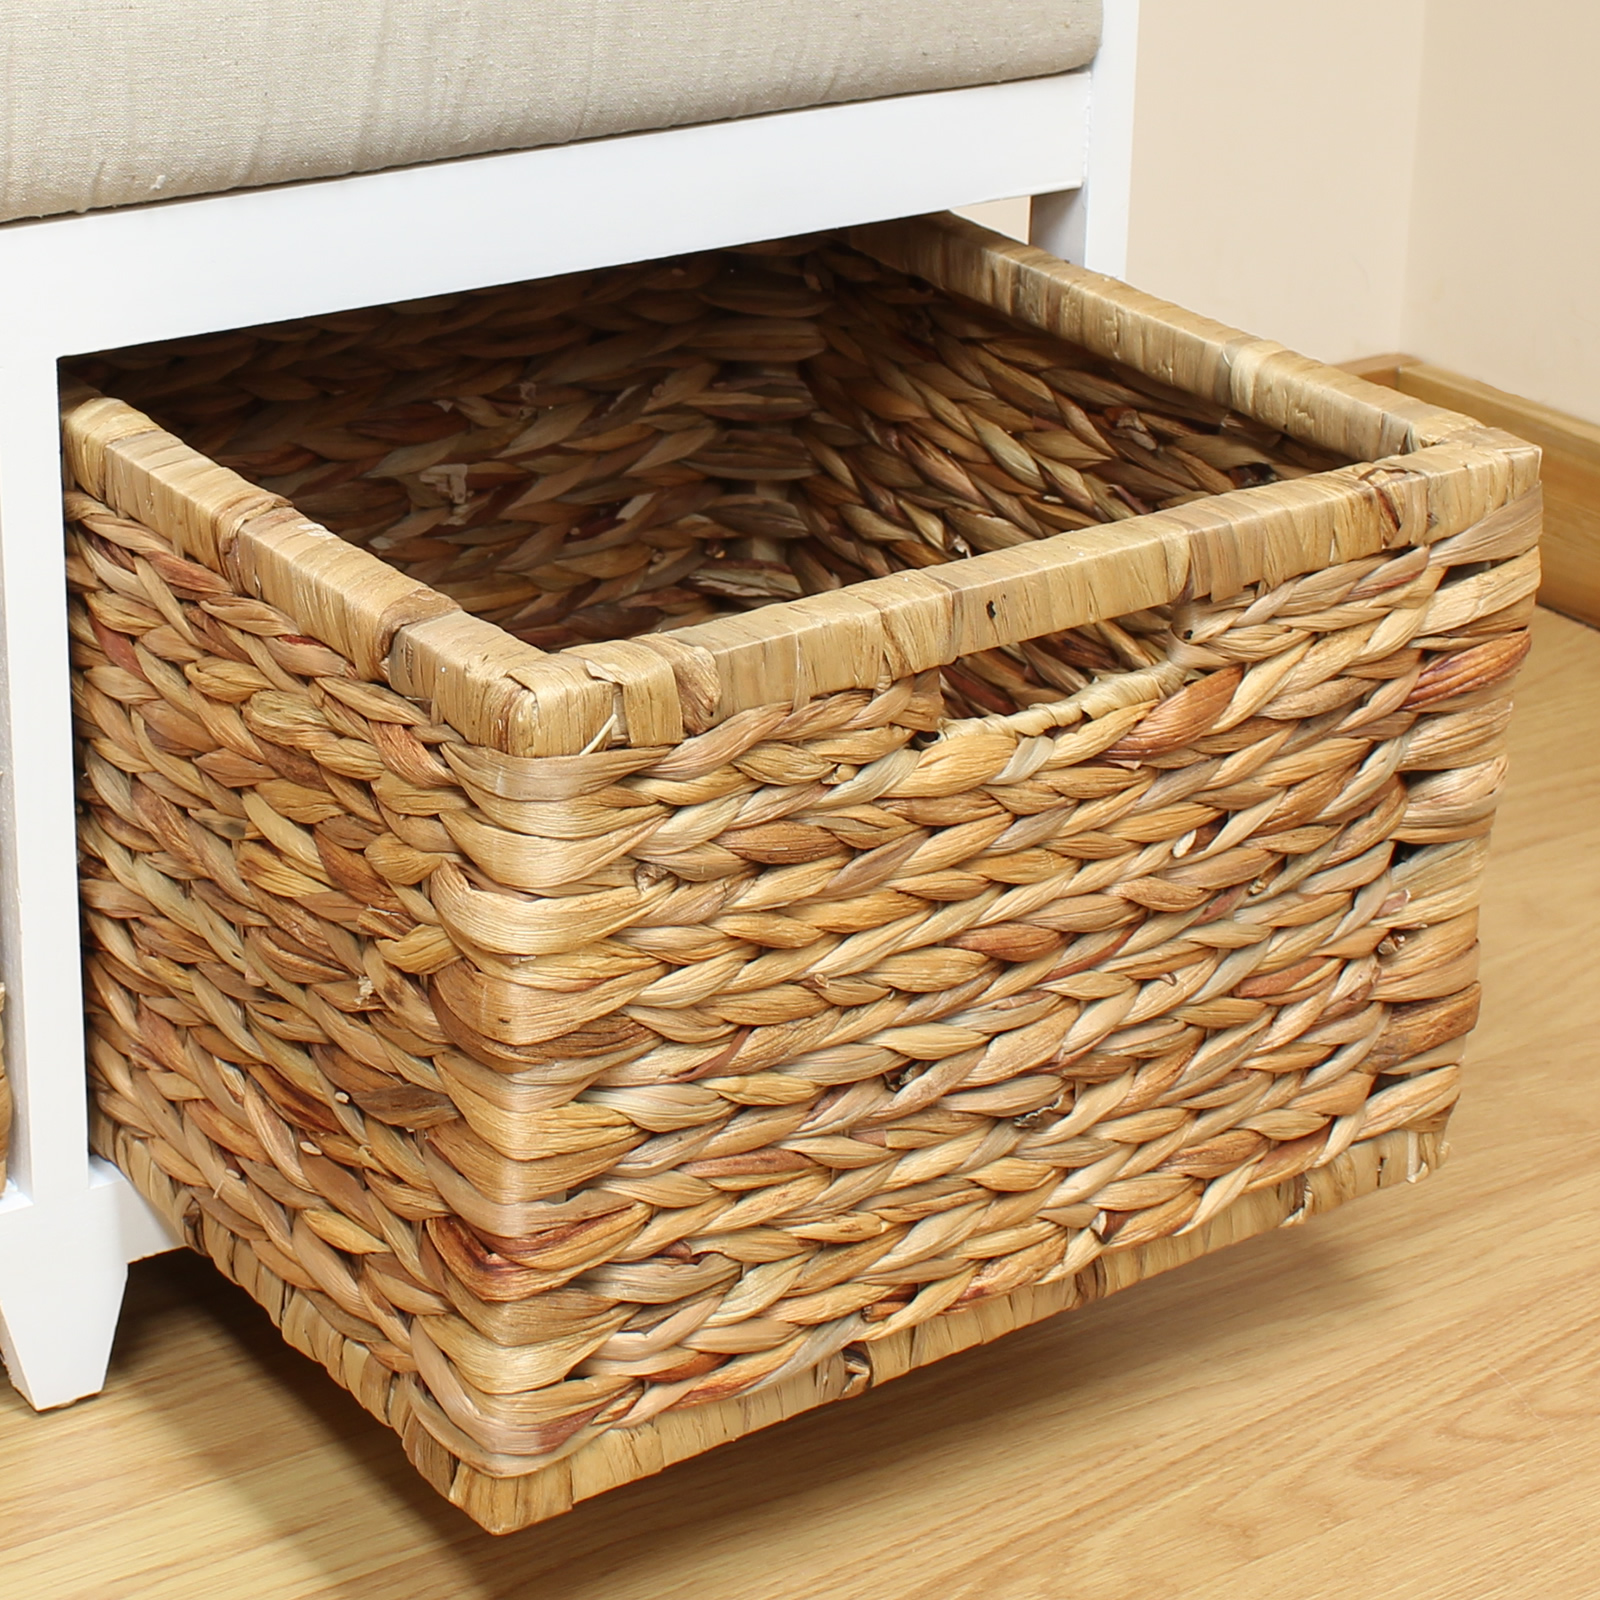 Storage Bench Cushion Seat Amp Seagrass Wicker Baskets